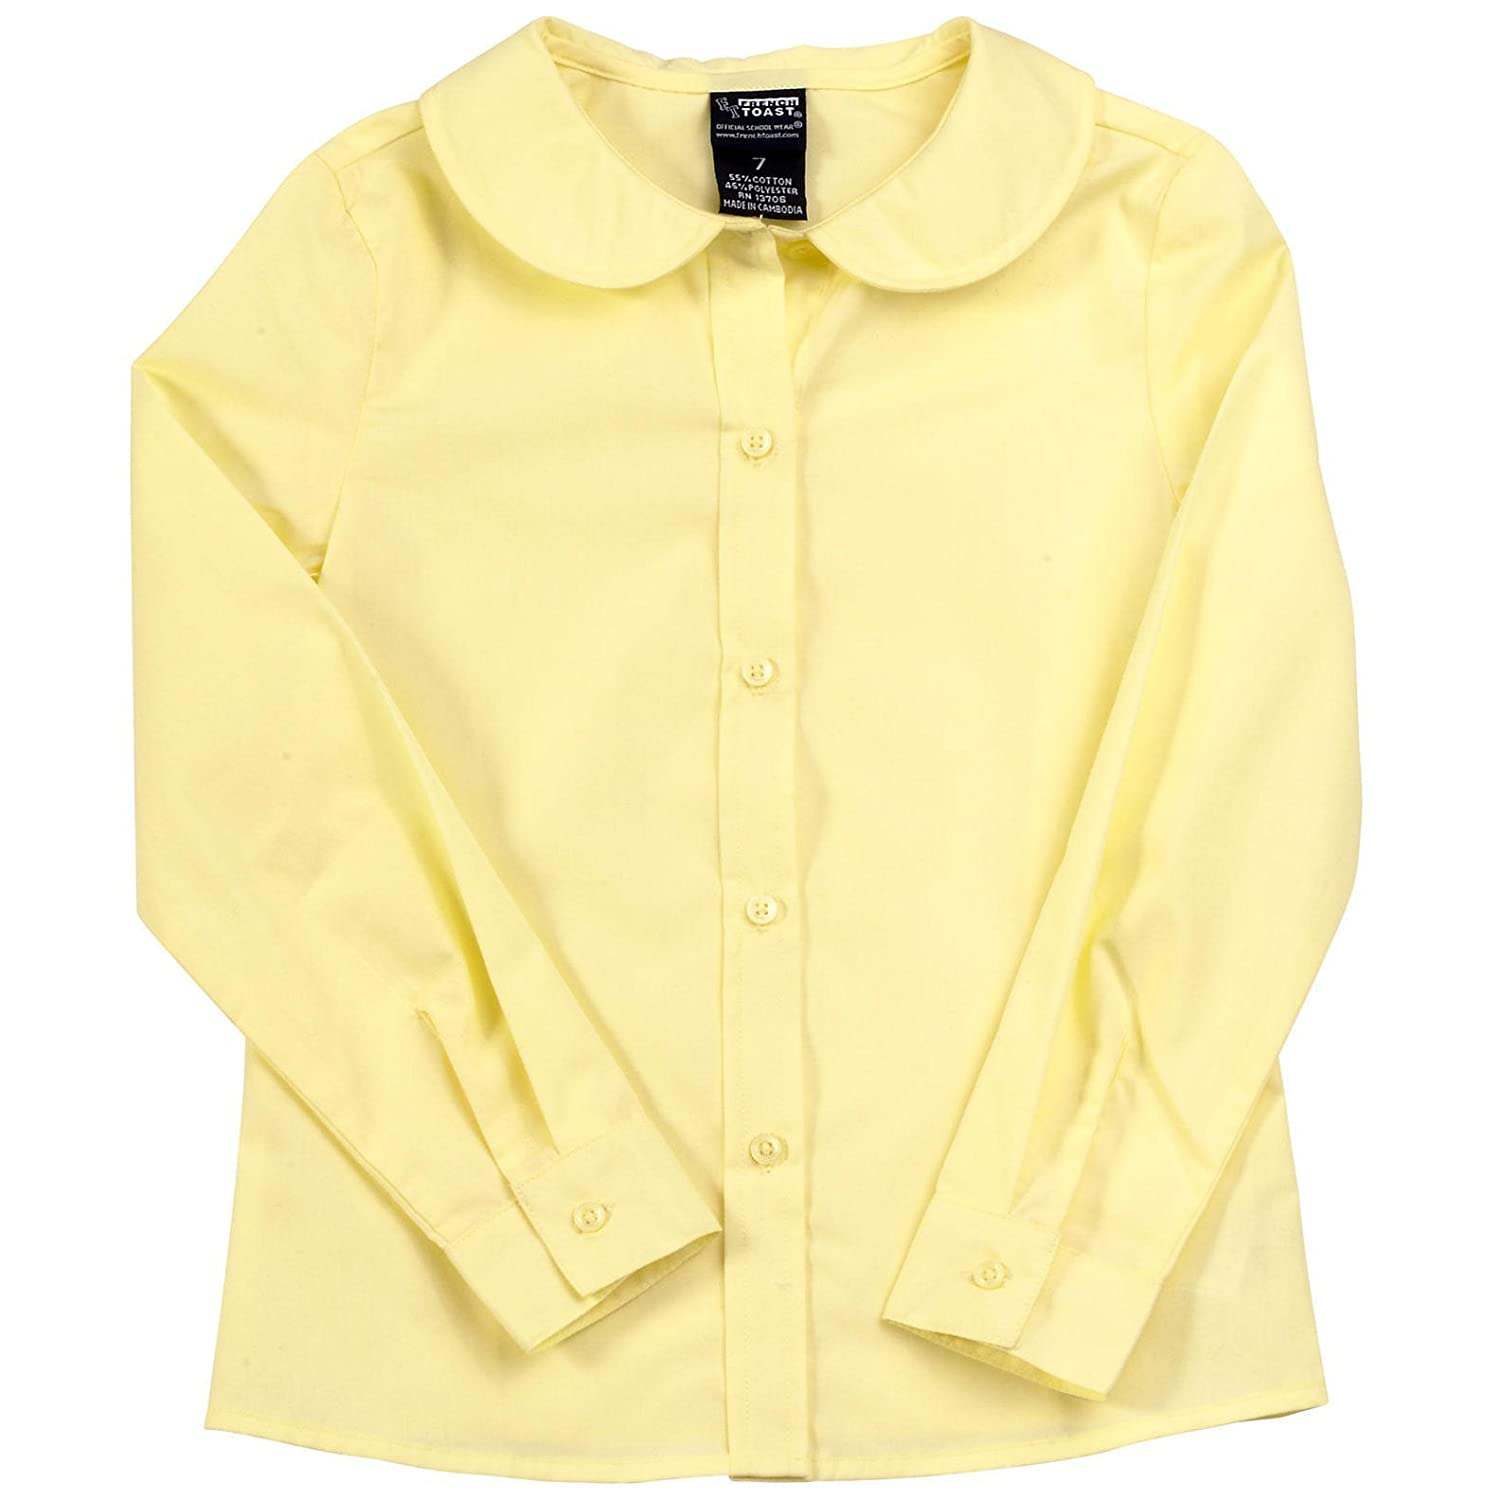 20 French Toast Girls Long-Sleeve Peter Pan Blouse Yellow